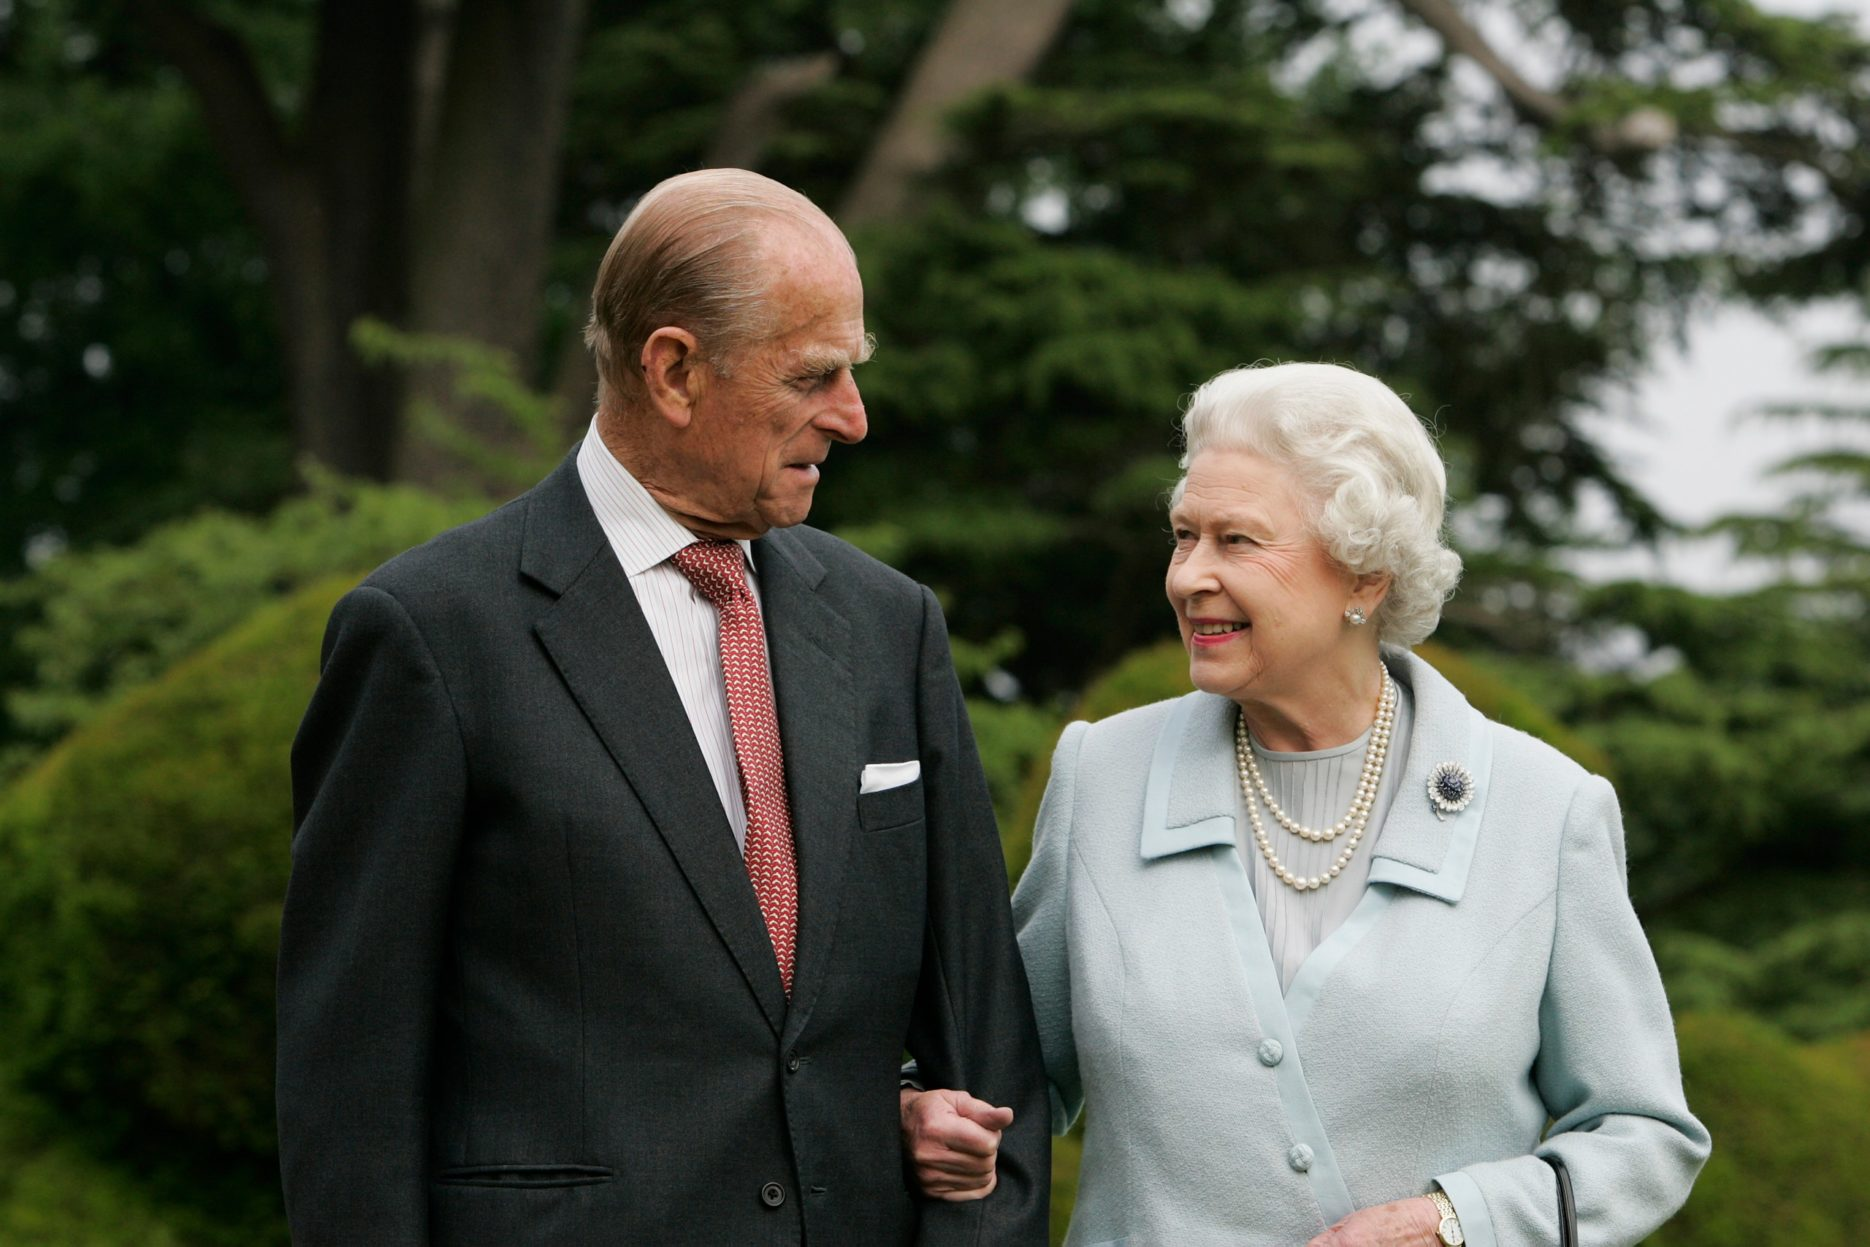 Prince Philip and Queen Credit: Royal Family